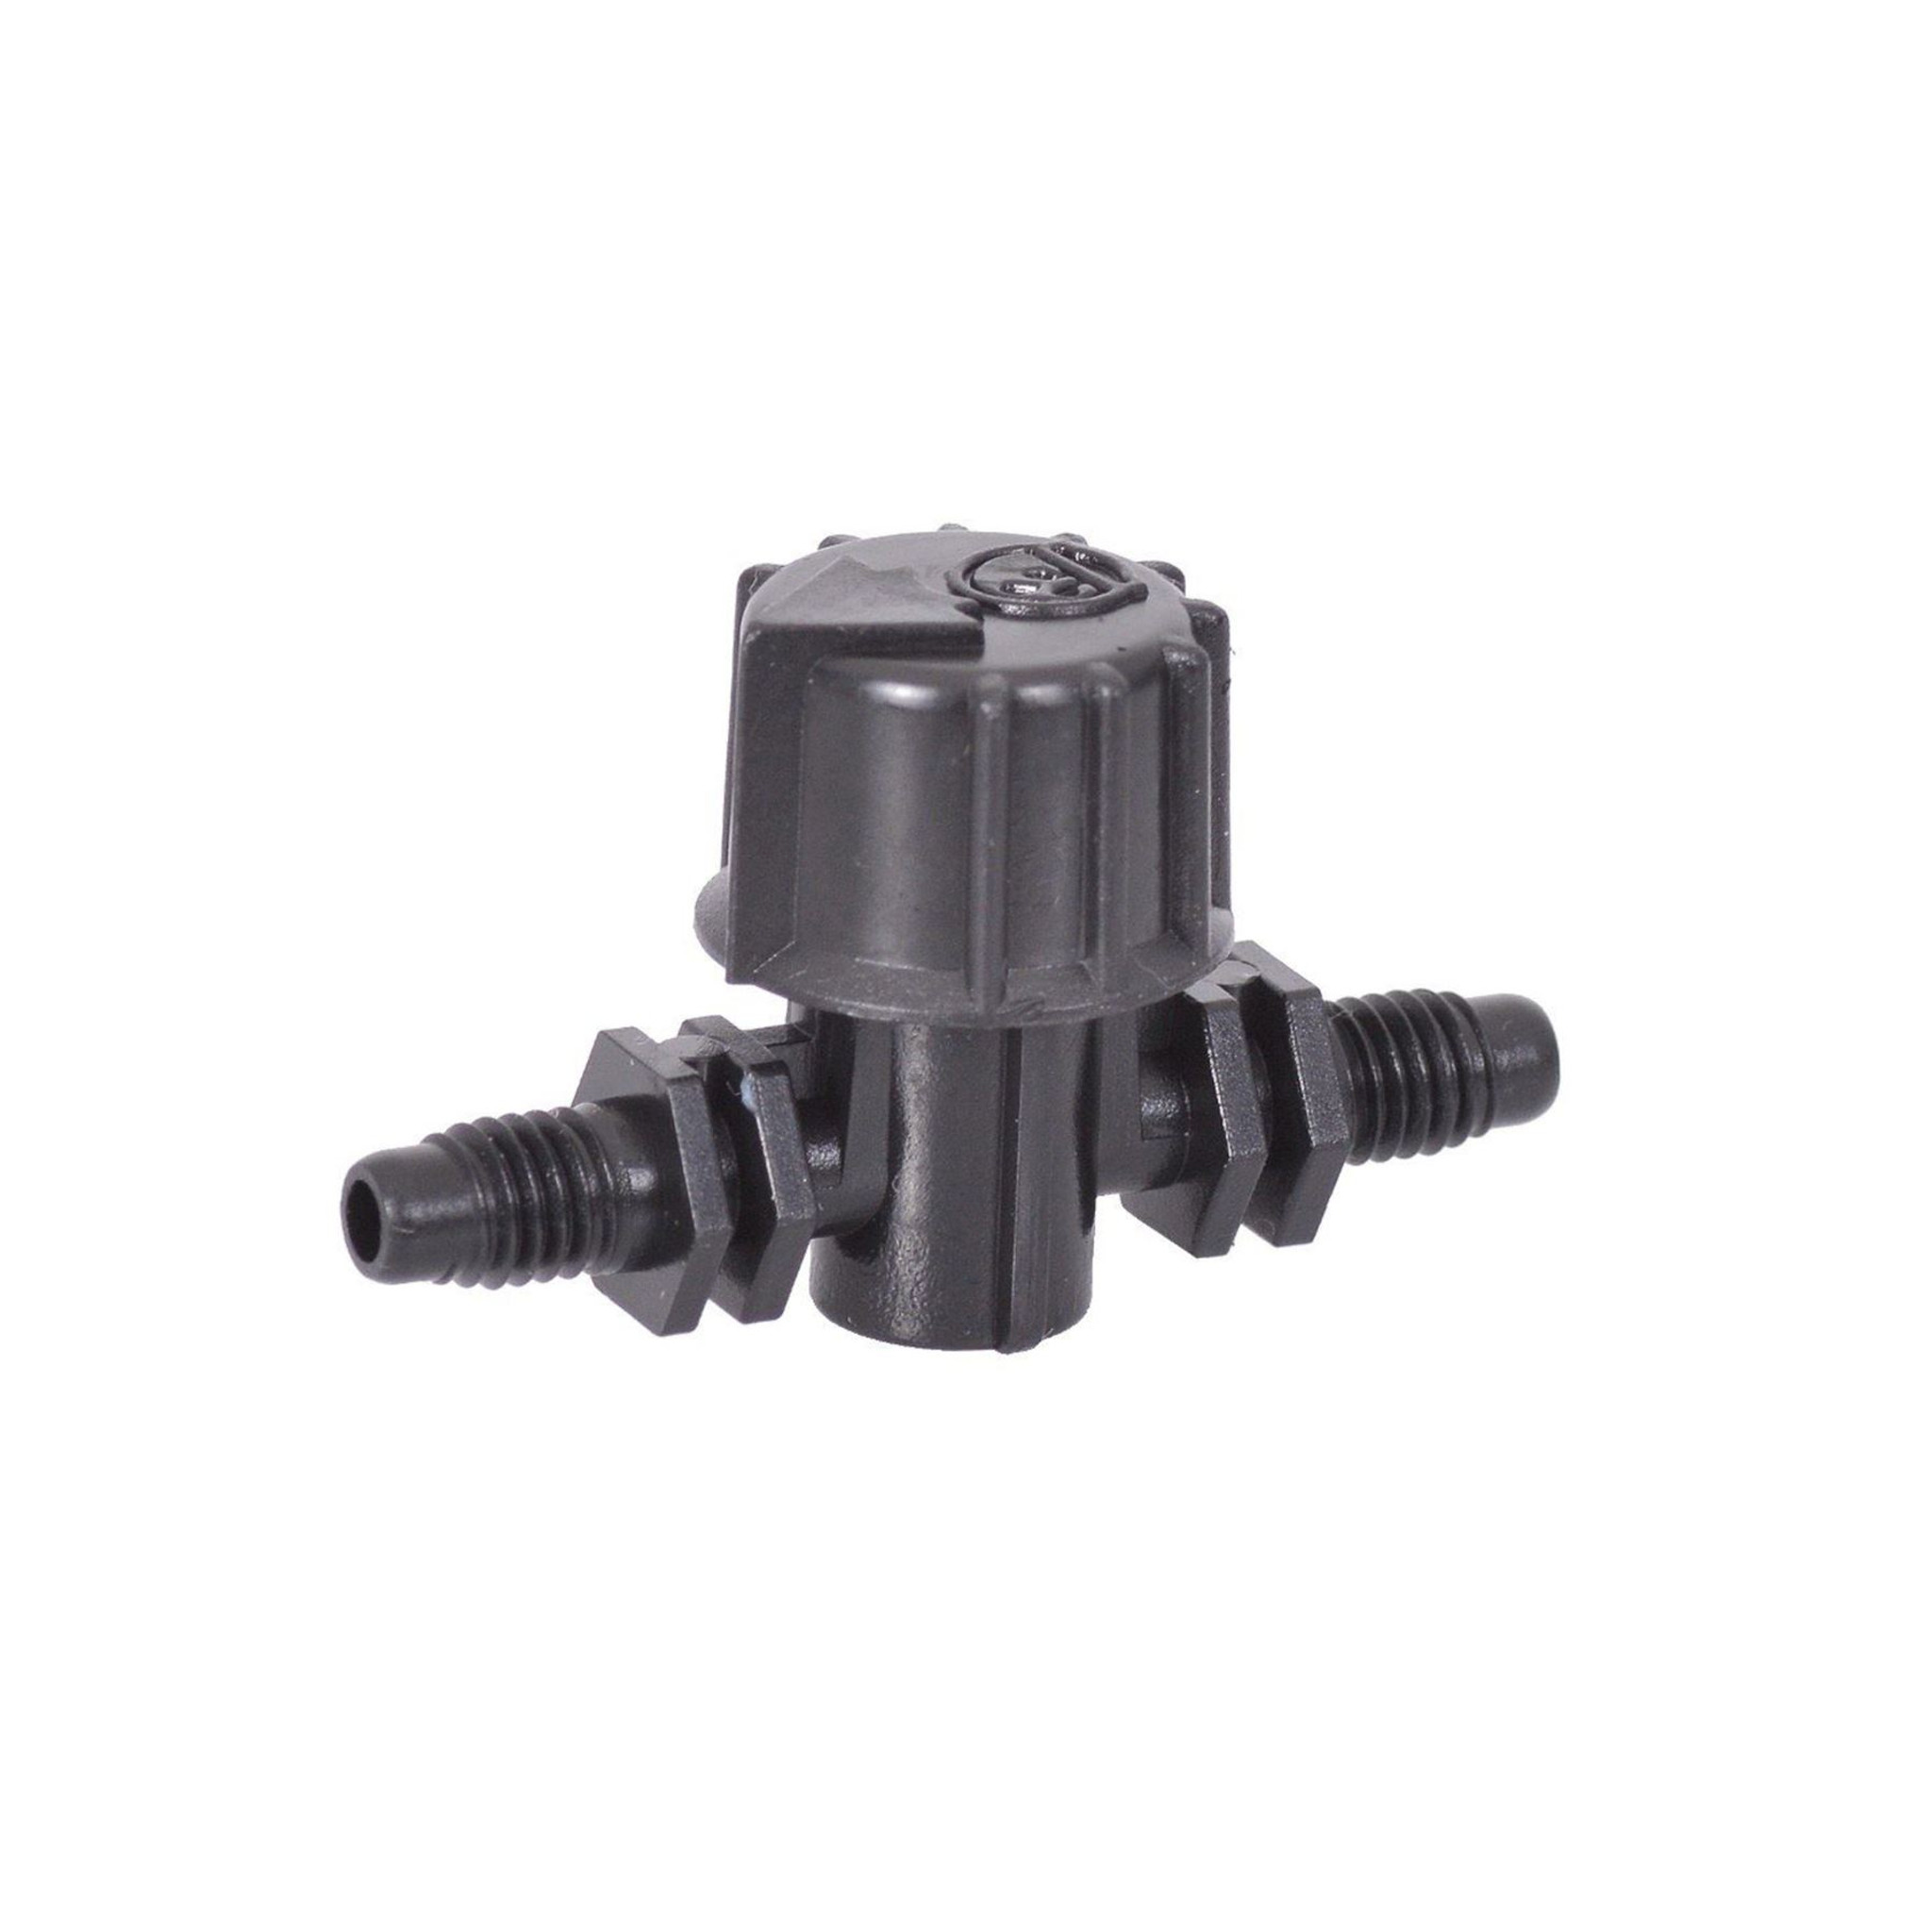 Antelco Adaptors threaded//barbed 4mm Single